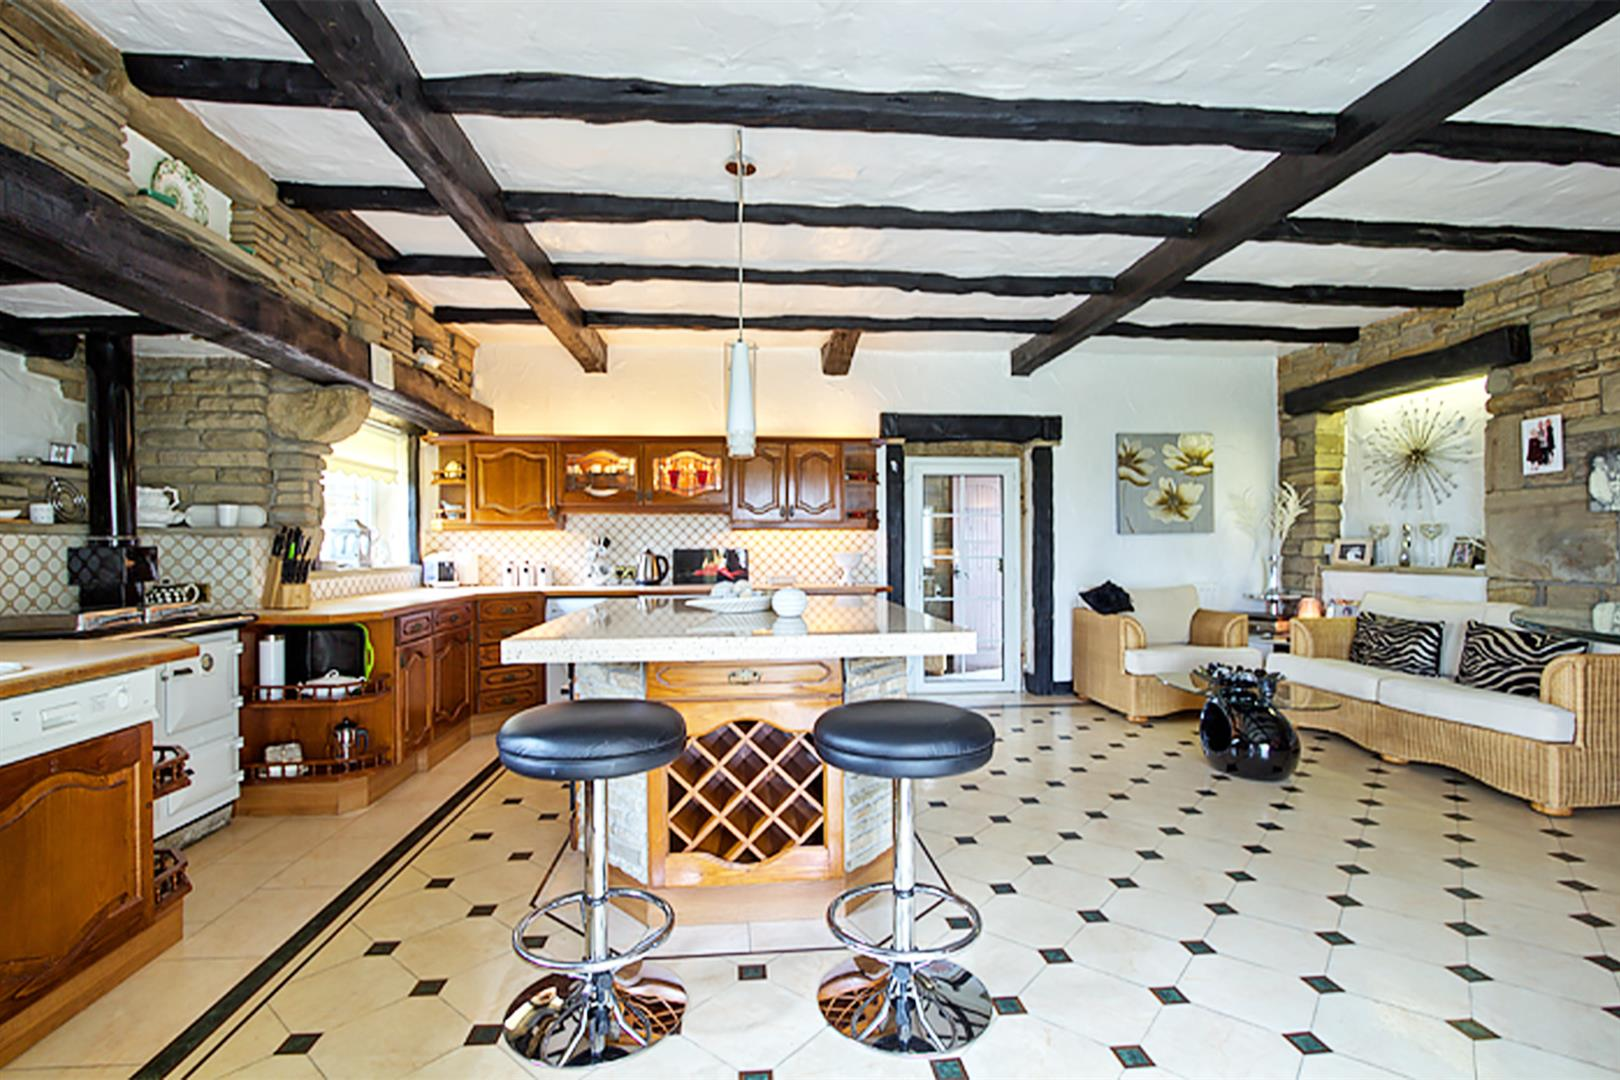 4 bedroom house For Sale in Bolton - kitchen 2.png.